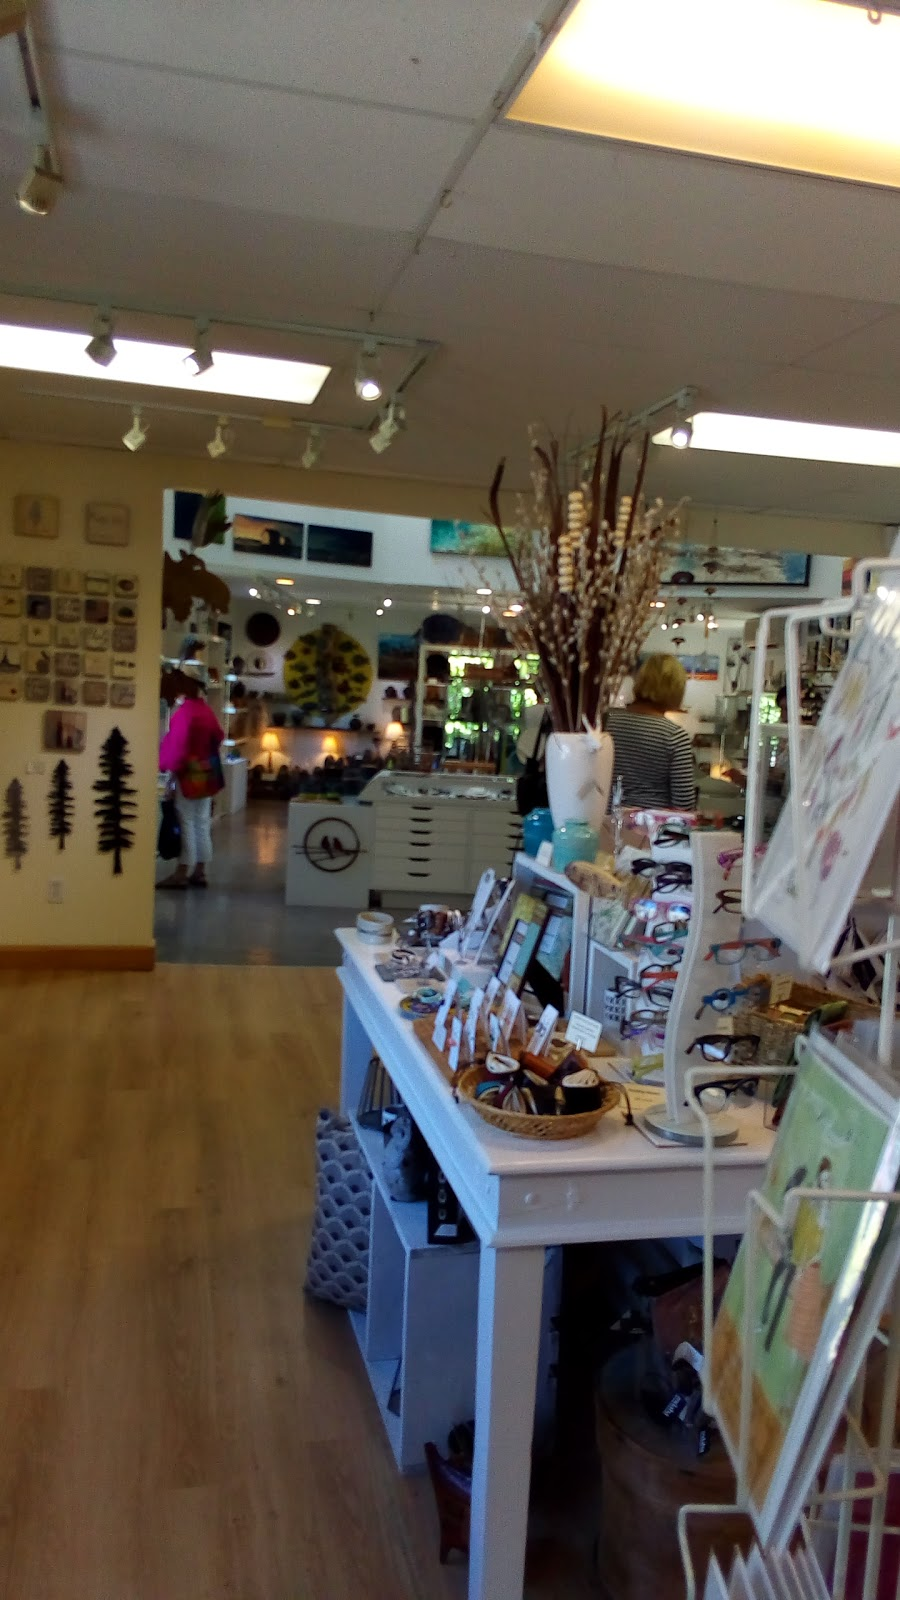 Northern Sun Gallery & Gifts | art gallery | 8 Edgewater St, Mahone Bay, NS B0J 2E0, Canada | 9025313000 OR +1 902-531-3000